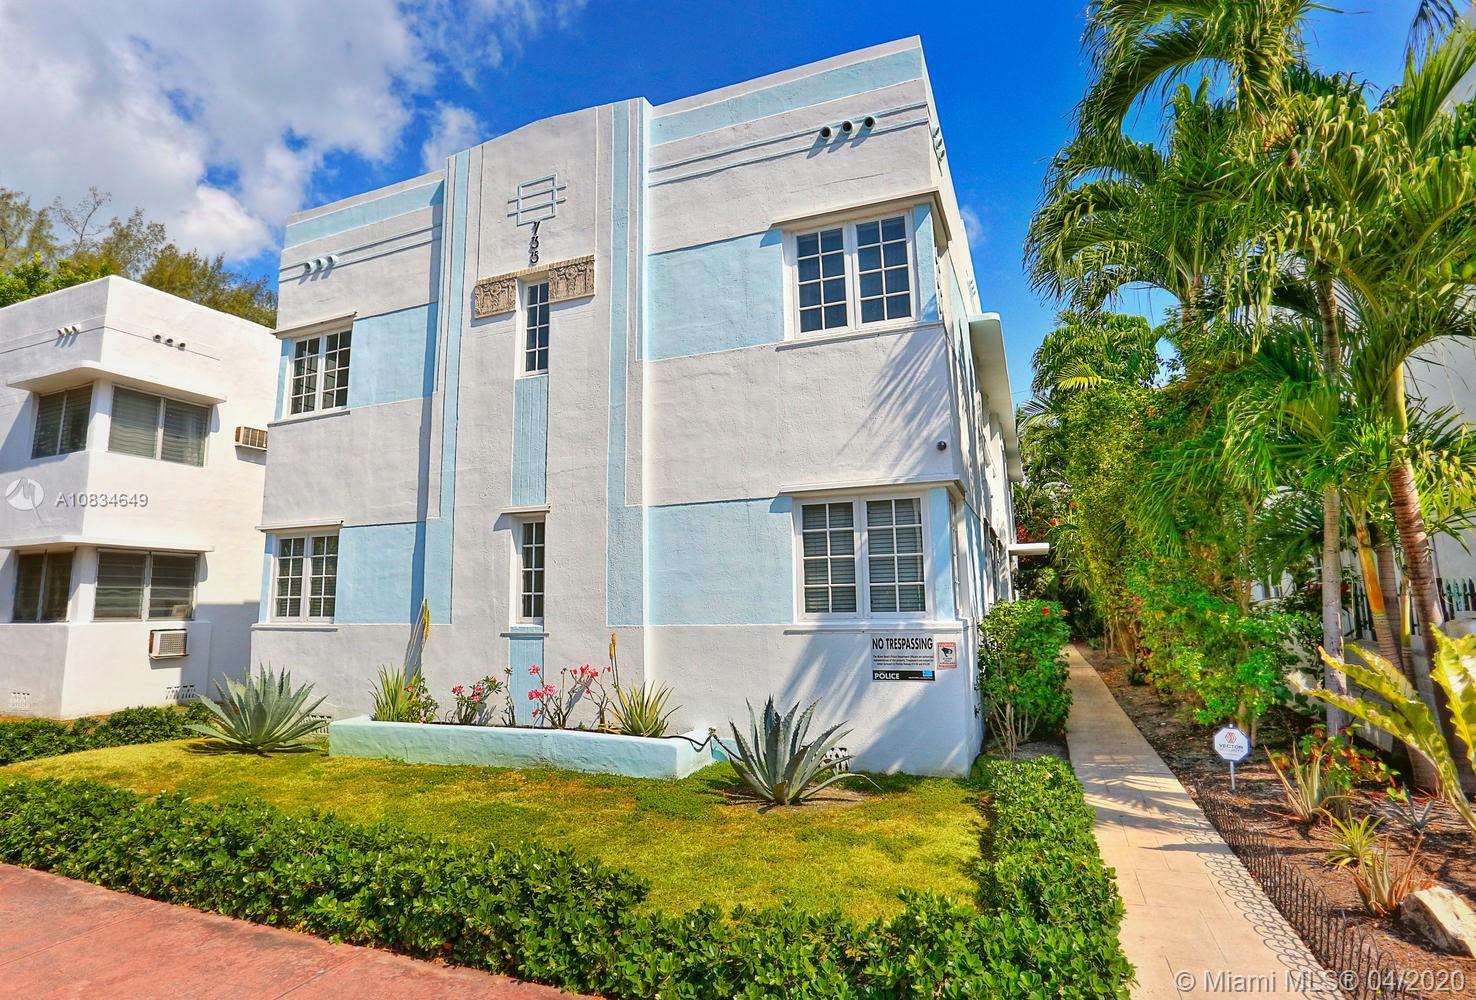 735 14th Pl # 3, Miami Beach, Florida 33139, 2 Bedrooms Bedrooms, ,2 BathroomsBathrooms,Residential,For Sale,735 14th Pl # 3,A10834649